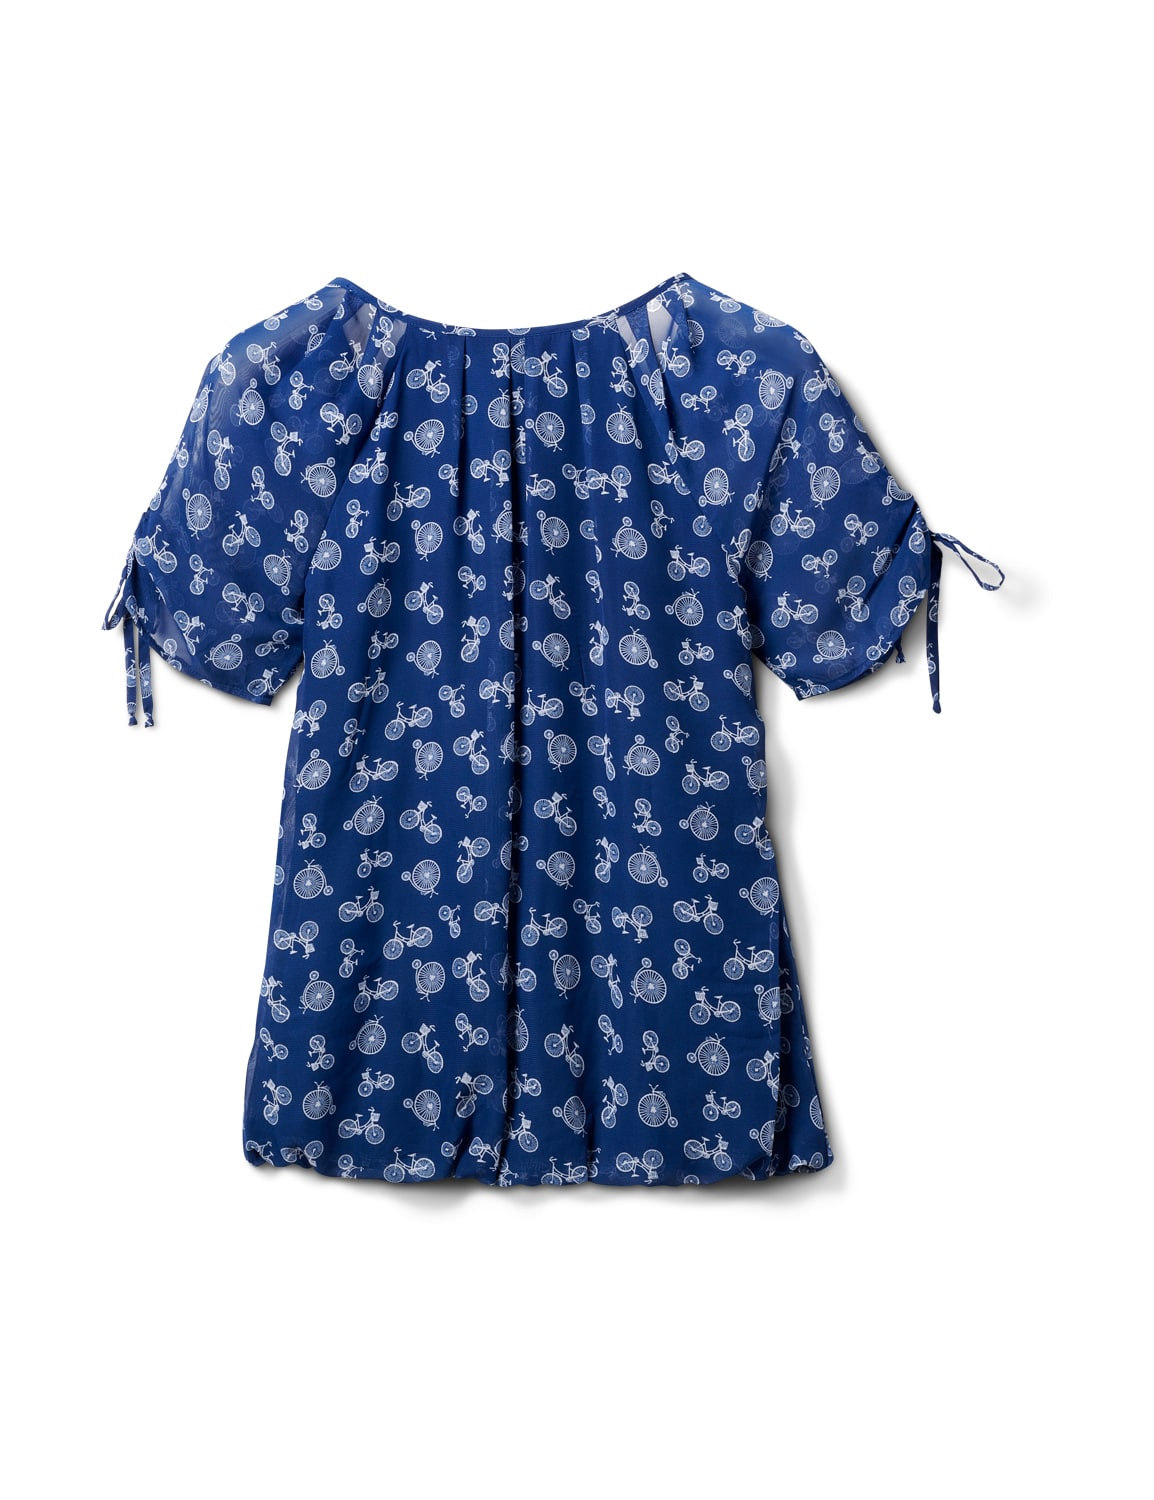 Bicycle Bubble Hem Tie Sleeve Top - Navy/White - Back